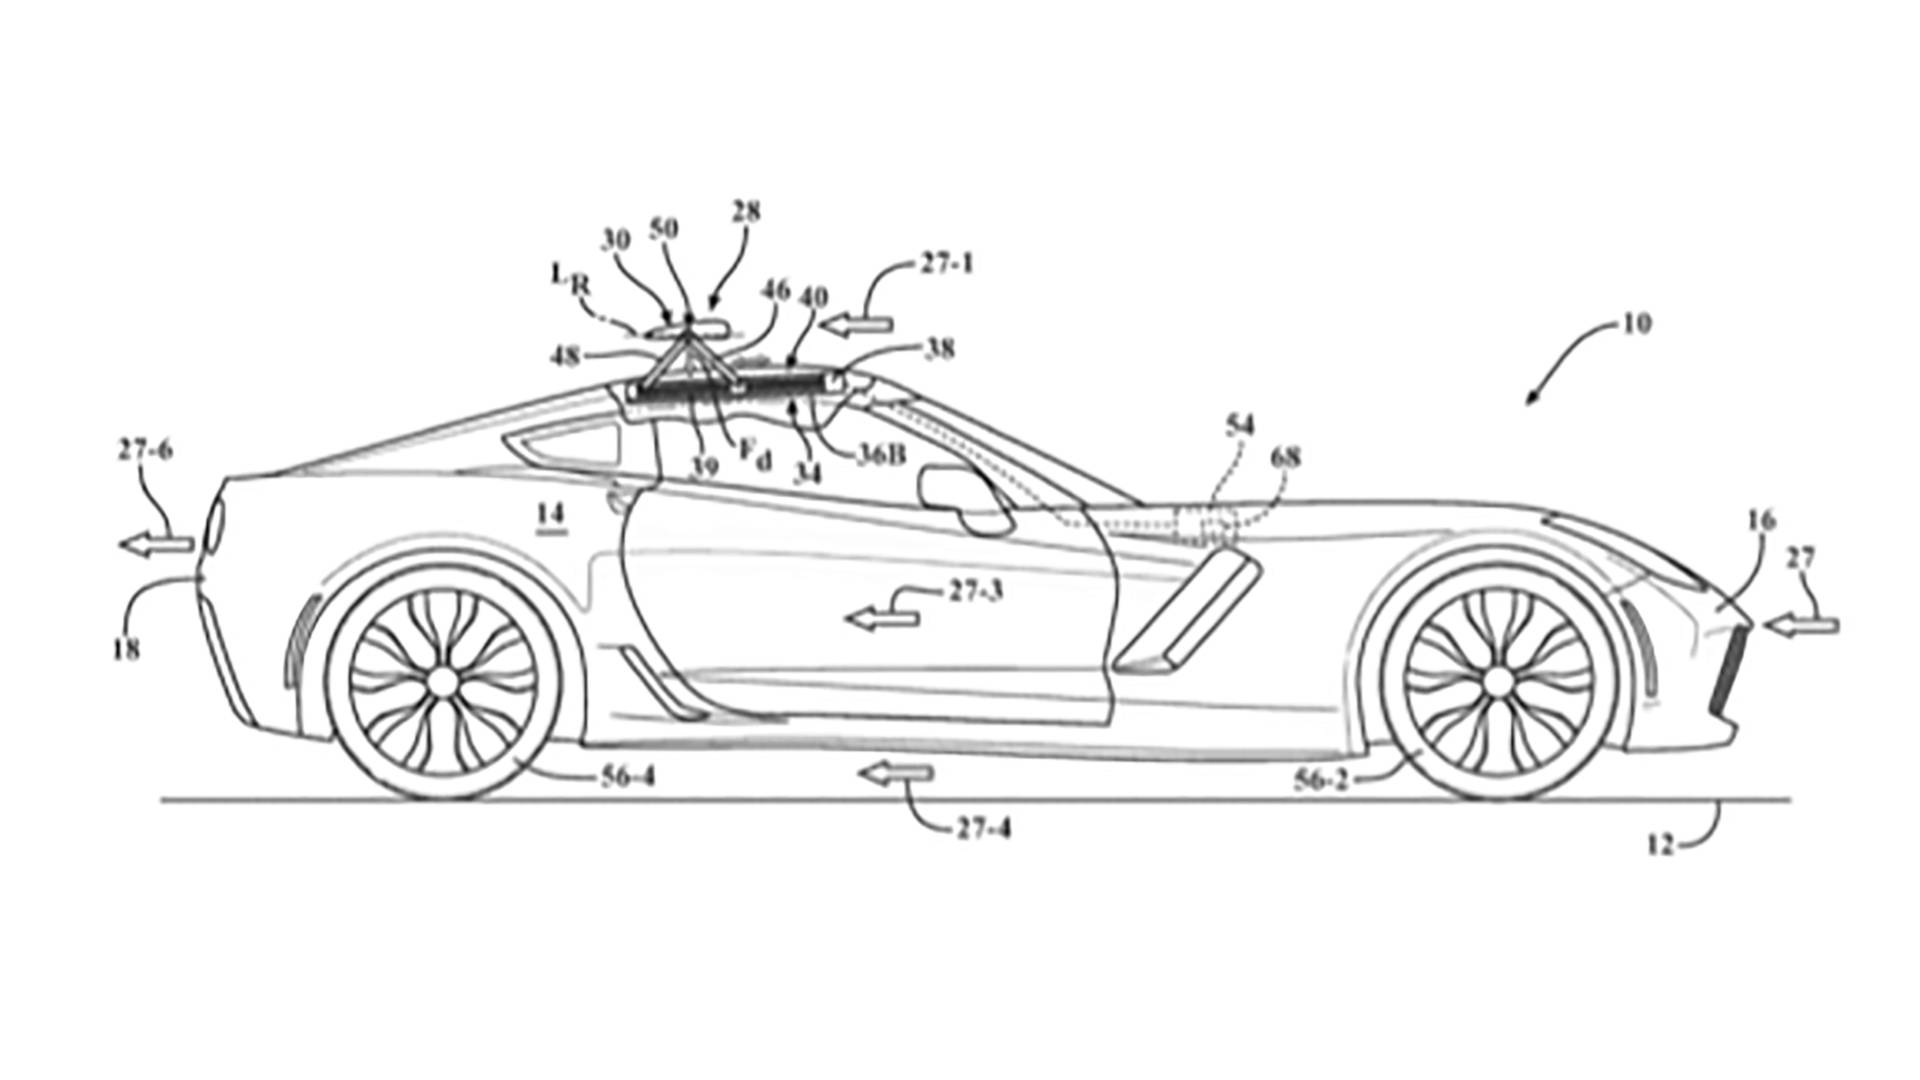 Gm Just Patented A Ton Of Active Aero Tech For The Corvette